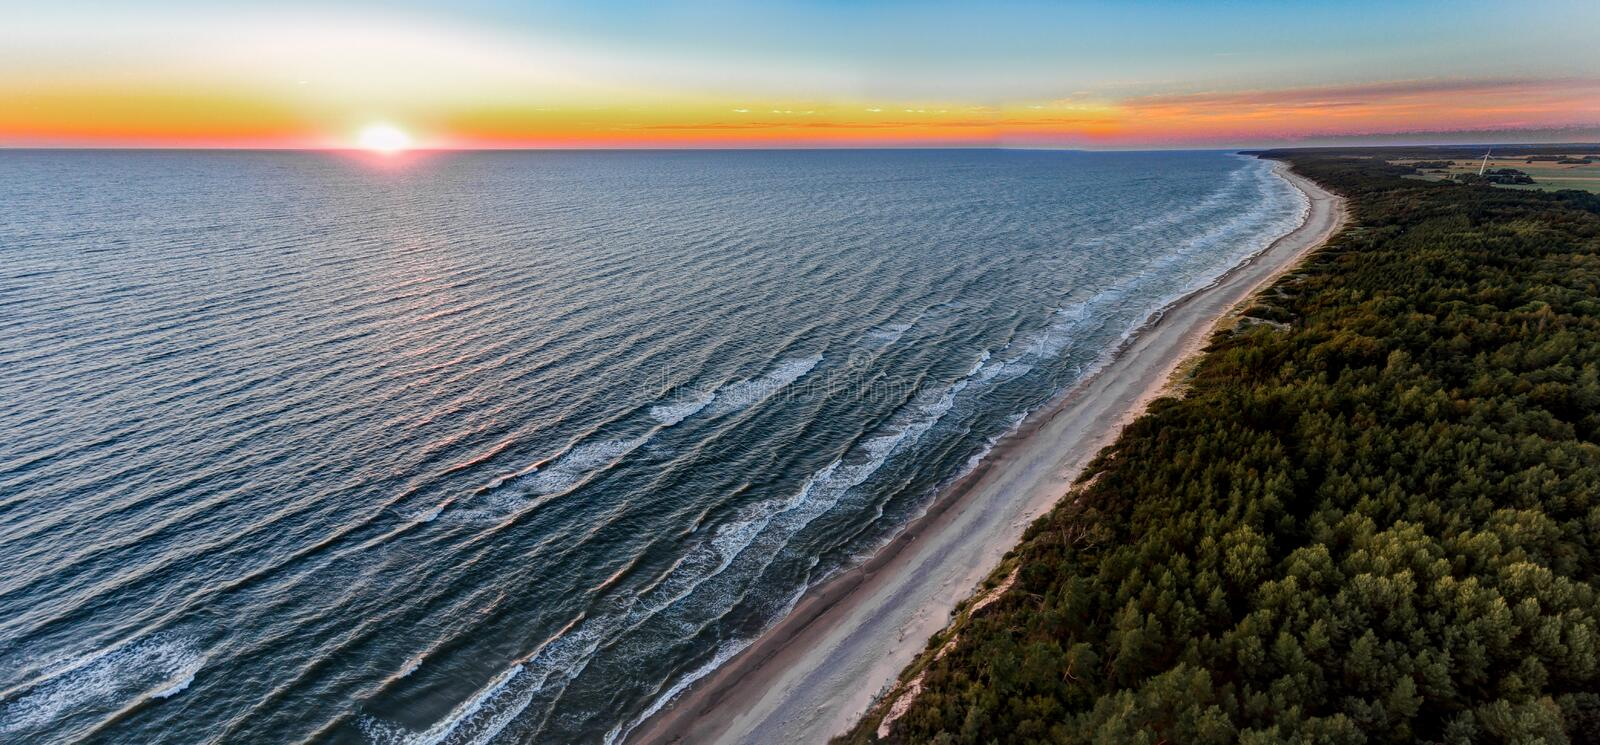 Drone image. aerial view of red sunset in the sea beach. shore line. baltic sea at dust - vintage retro look royalty free stock images